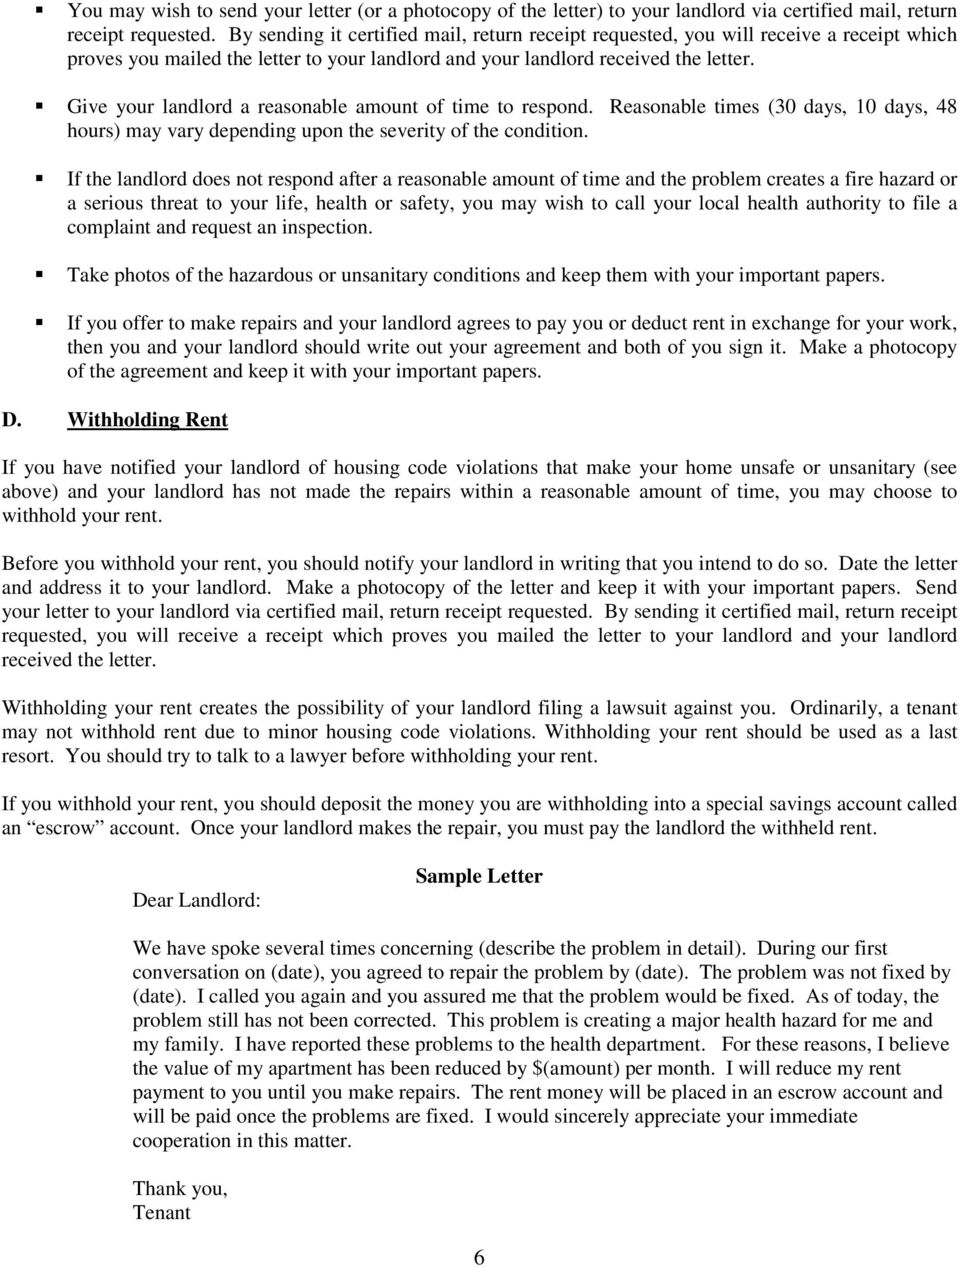 YOU AND YOUR LANDLORD - PDF Withhold Rent Tenant Sample Letters on tenant renting recommendation letter, tenant requesting deposit refund, lease renewal letters samples, tenant proof of residence letter, tenant letter templates, tenant rental verification letter, tenant rent amount letter, tenant rejection letter without explanation, house rules for adults samples, tenant appreciation letter, buyers letters samples, tenant not renewing lease letter, tenant proof of residency, tenant violation letter,